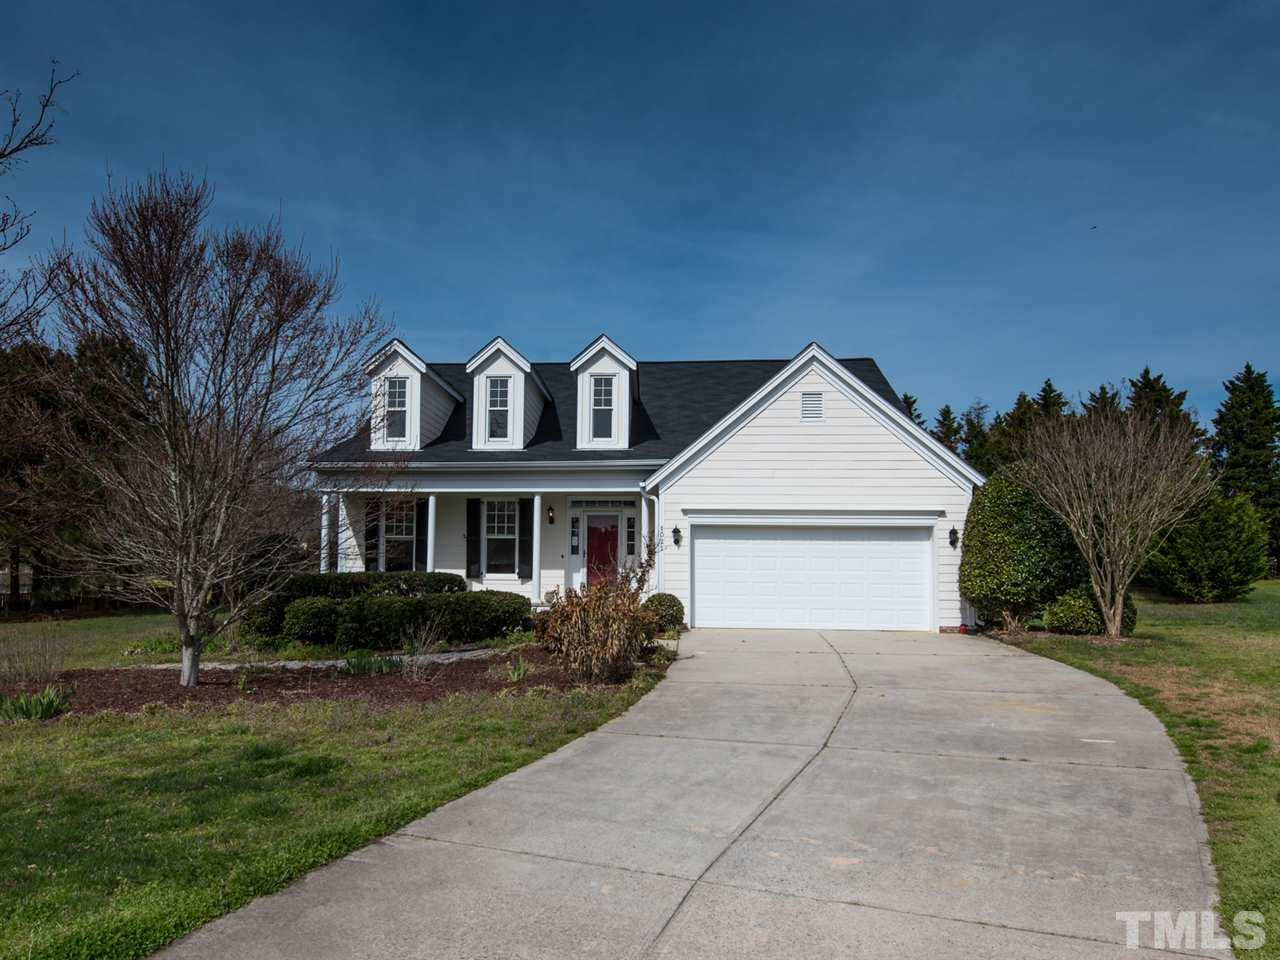 1025 TRANSOM COURT, RALEIGH, NC 27603